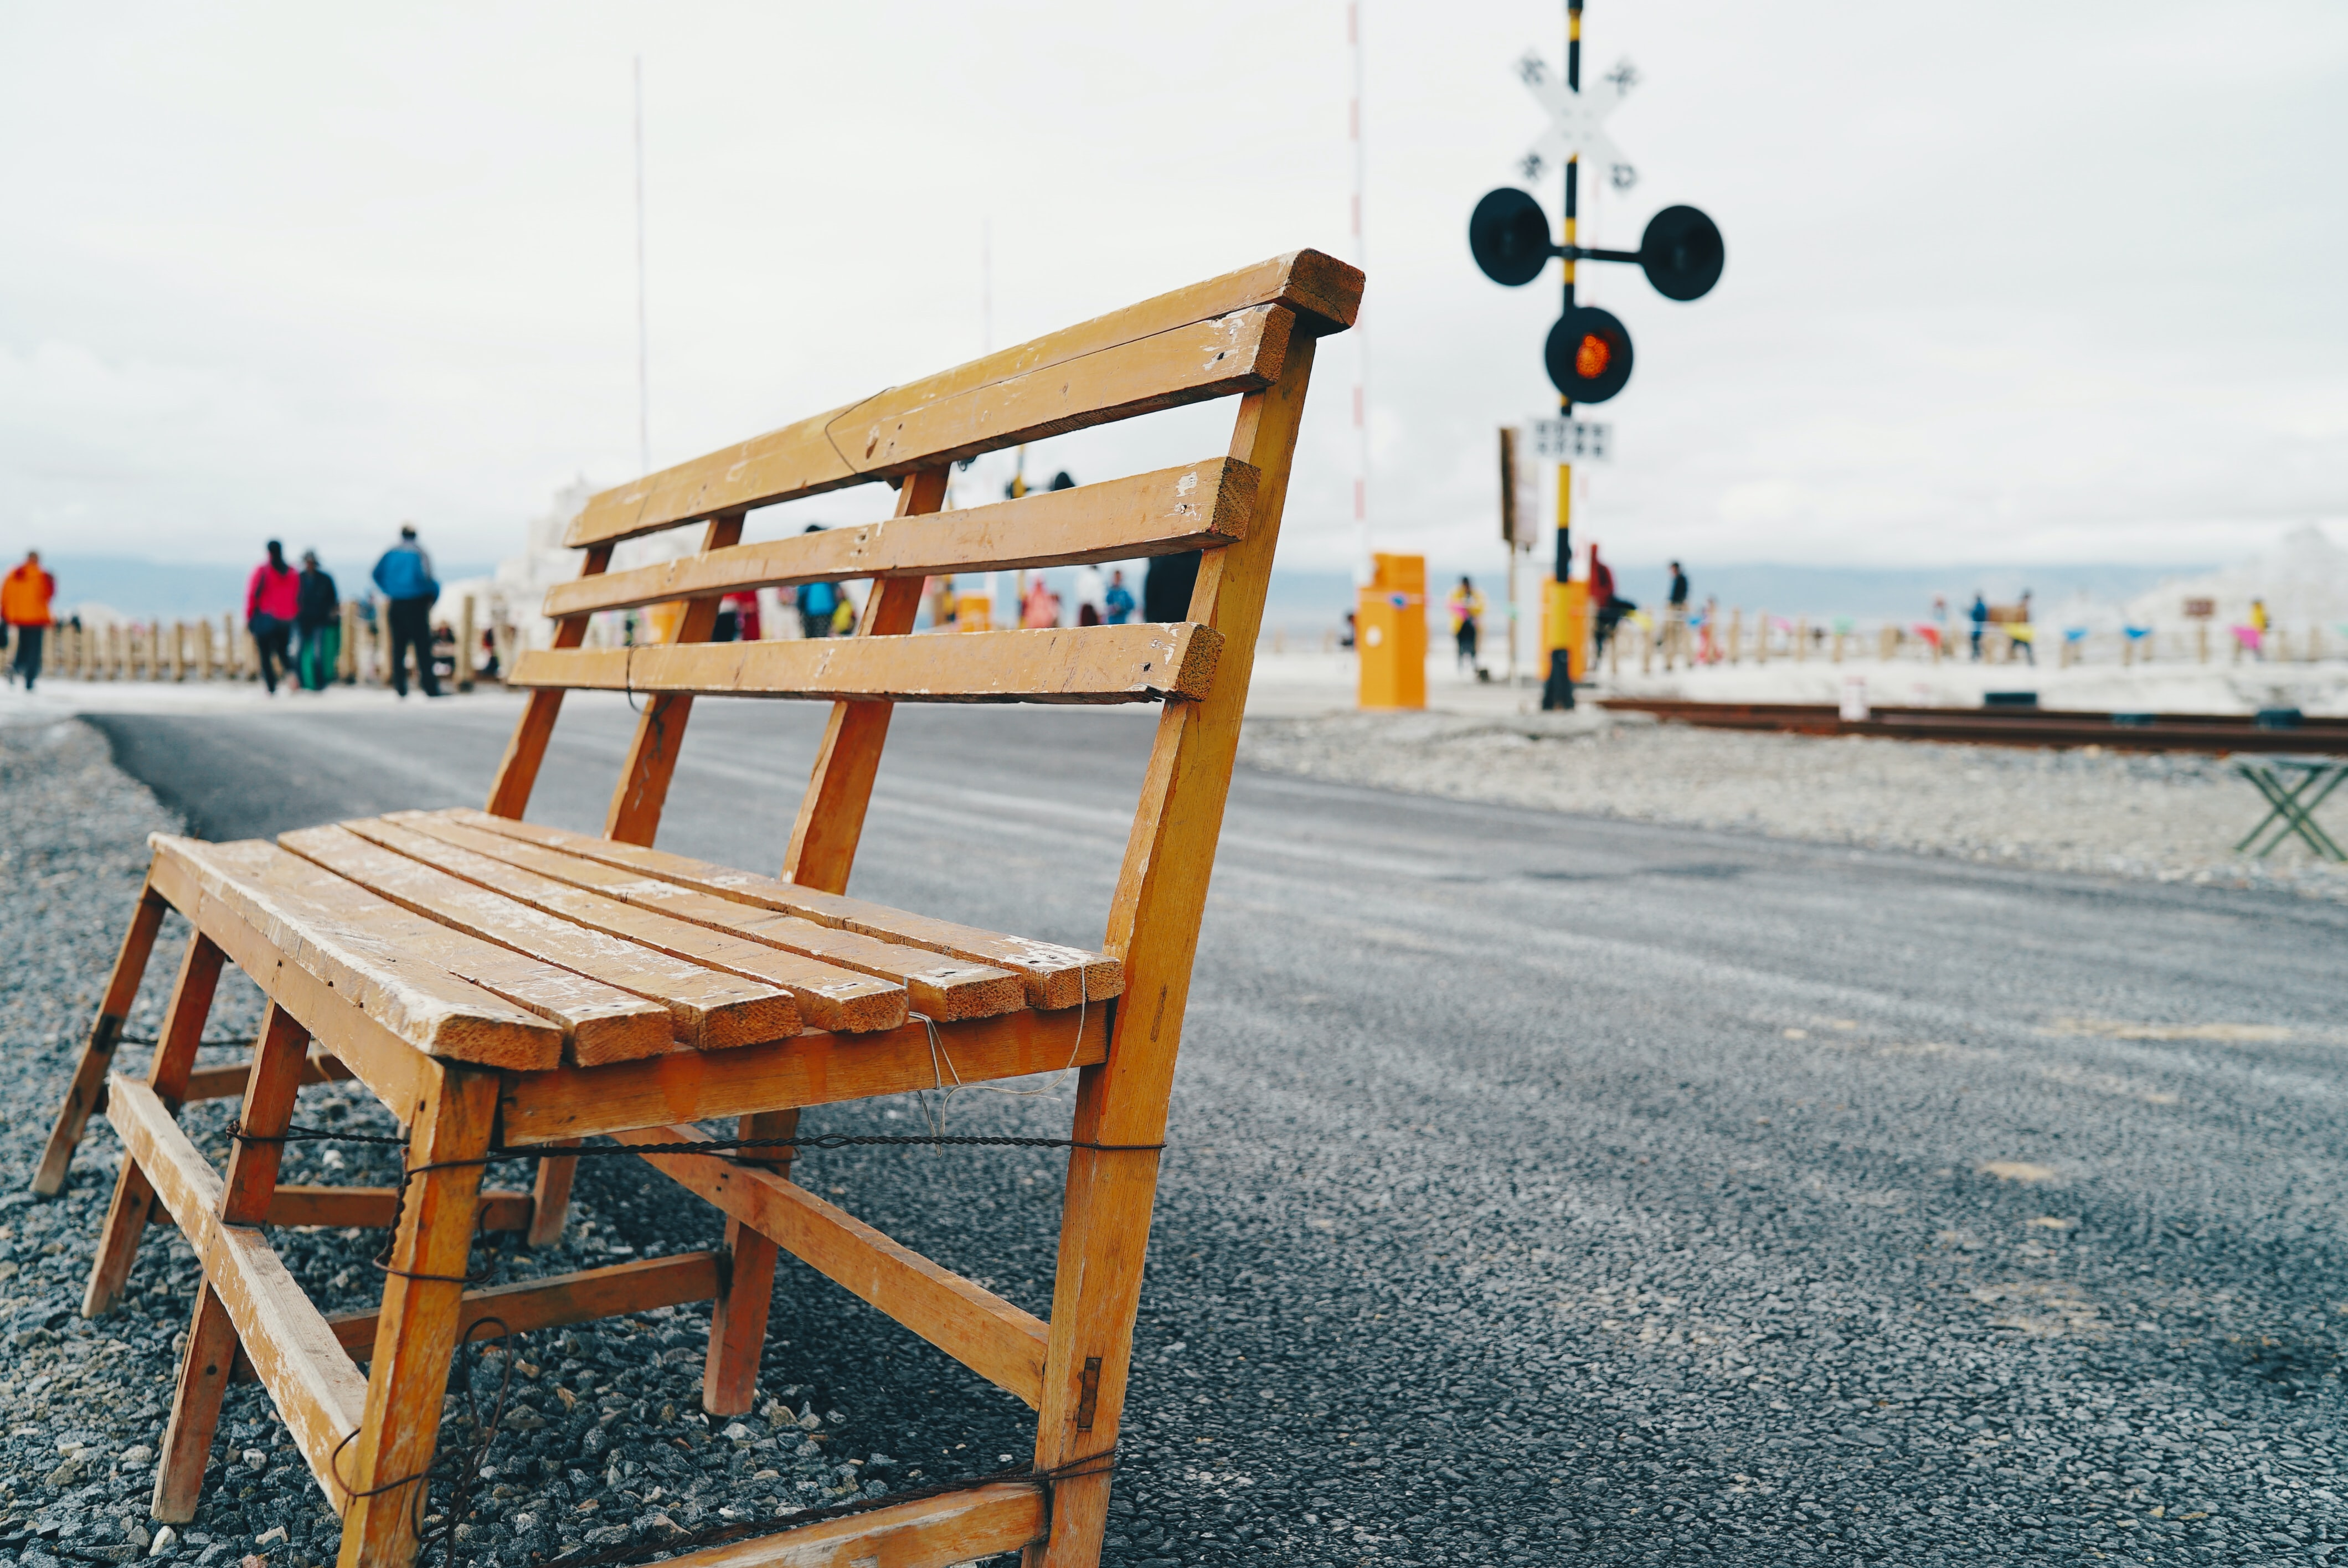 selective focus photography of brown wooden bench beside asphalt road during daytime